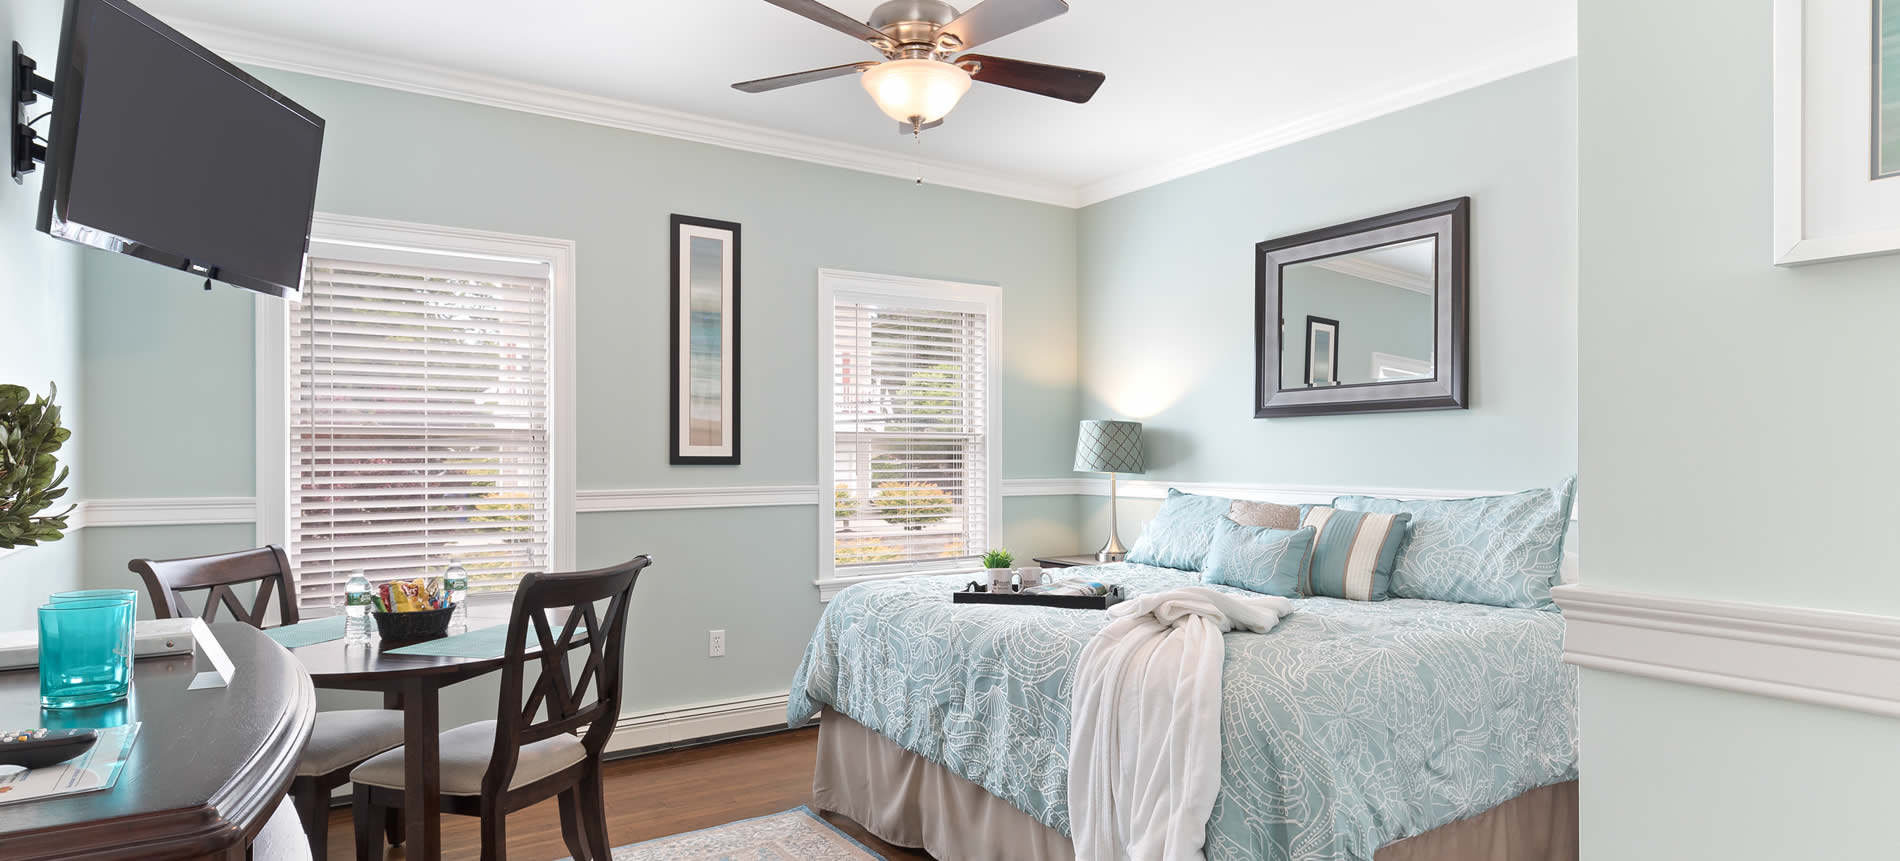 nantasket beach boutique hotel guest room with bed table robe and ceiling fan